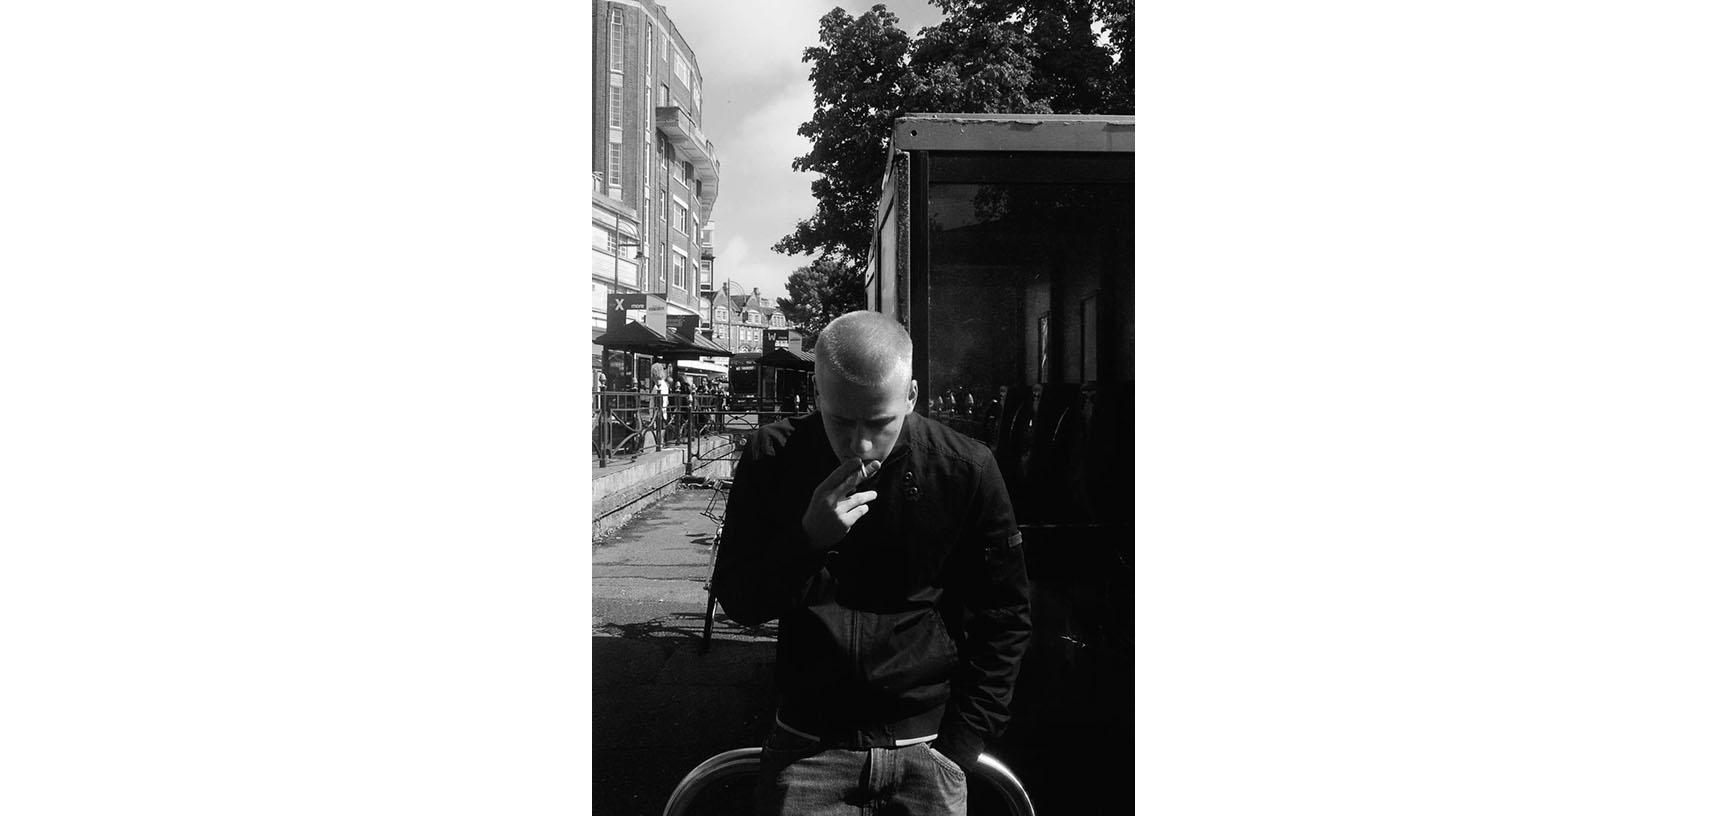 A black and white photograph of a man standing, head down, smoking a cigarette